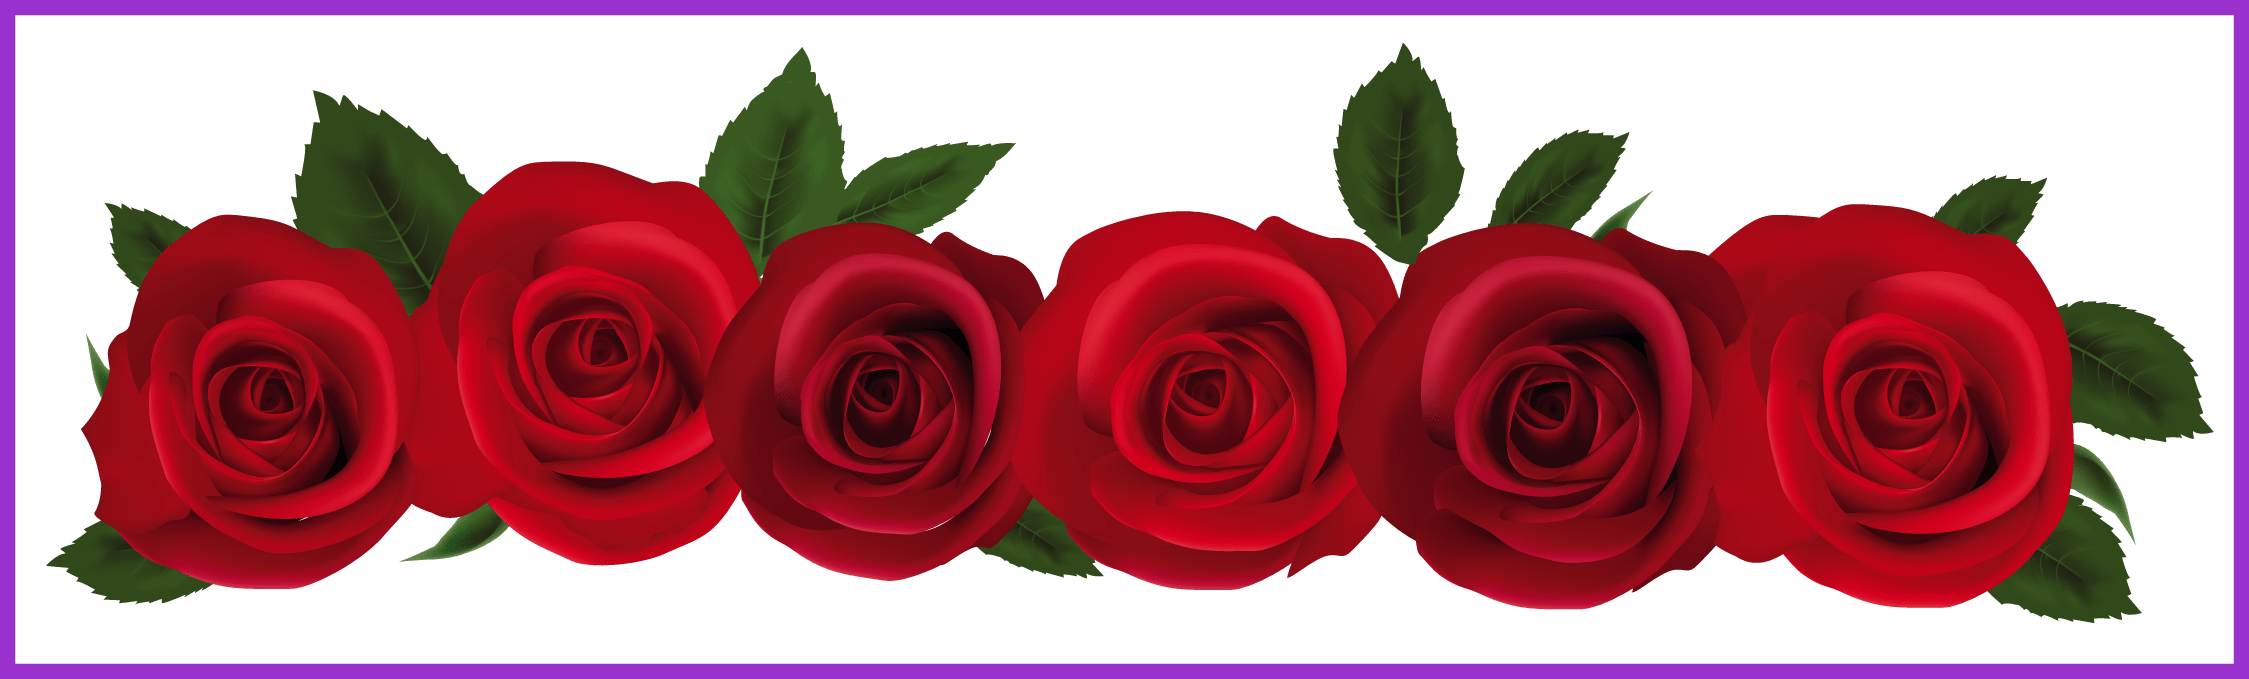 Flower border clipart roses vector royalty free 18 Ideas of Pink Rose Flower Border Png - Greening The Rose vector royalty free